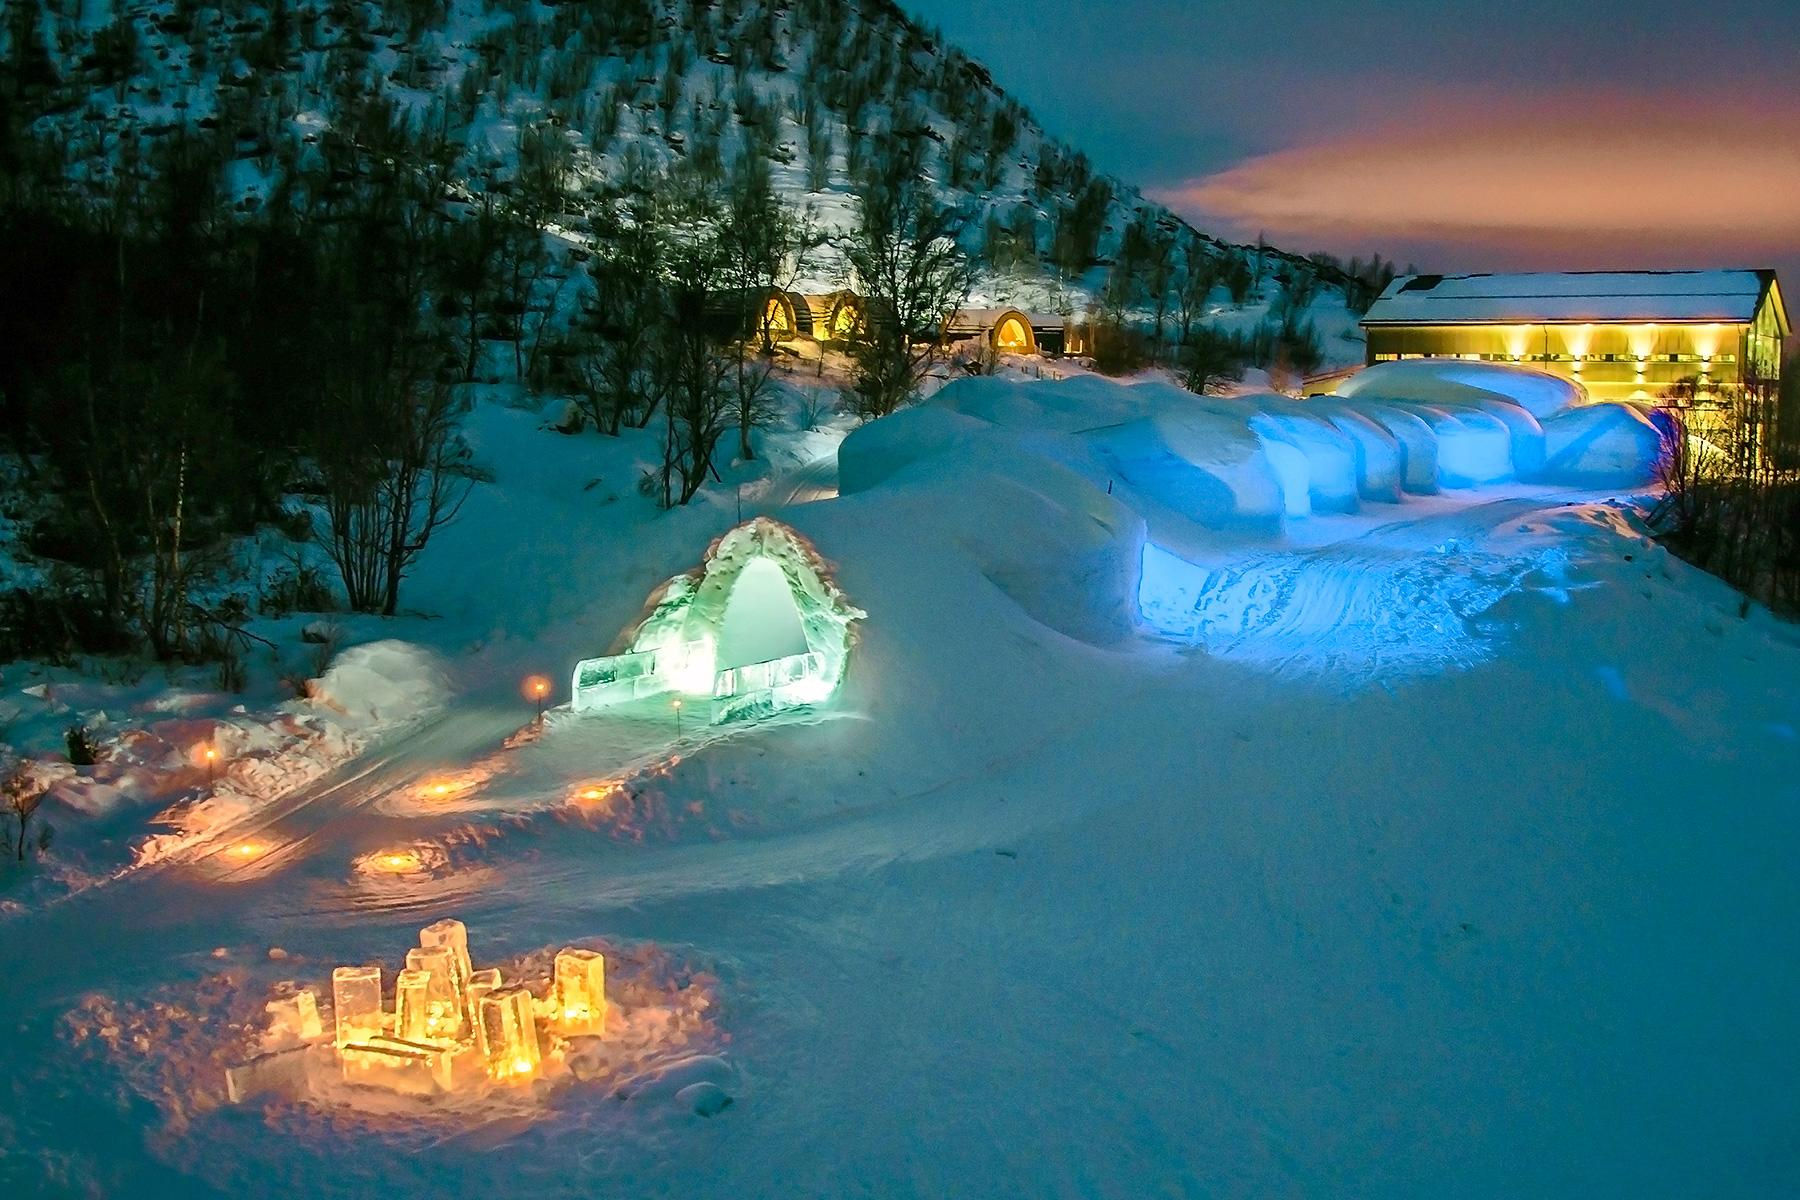 08_IceHotels__KirkenesSnowhotel_The-Snowhotel